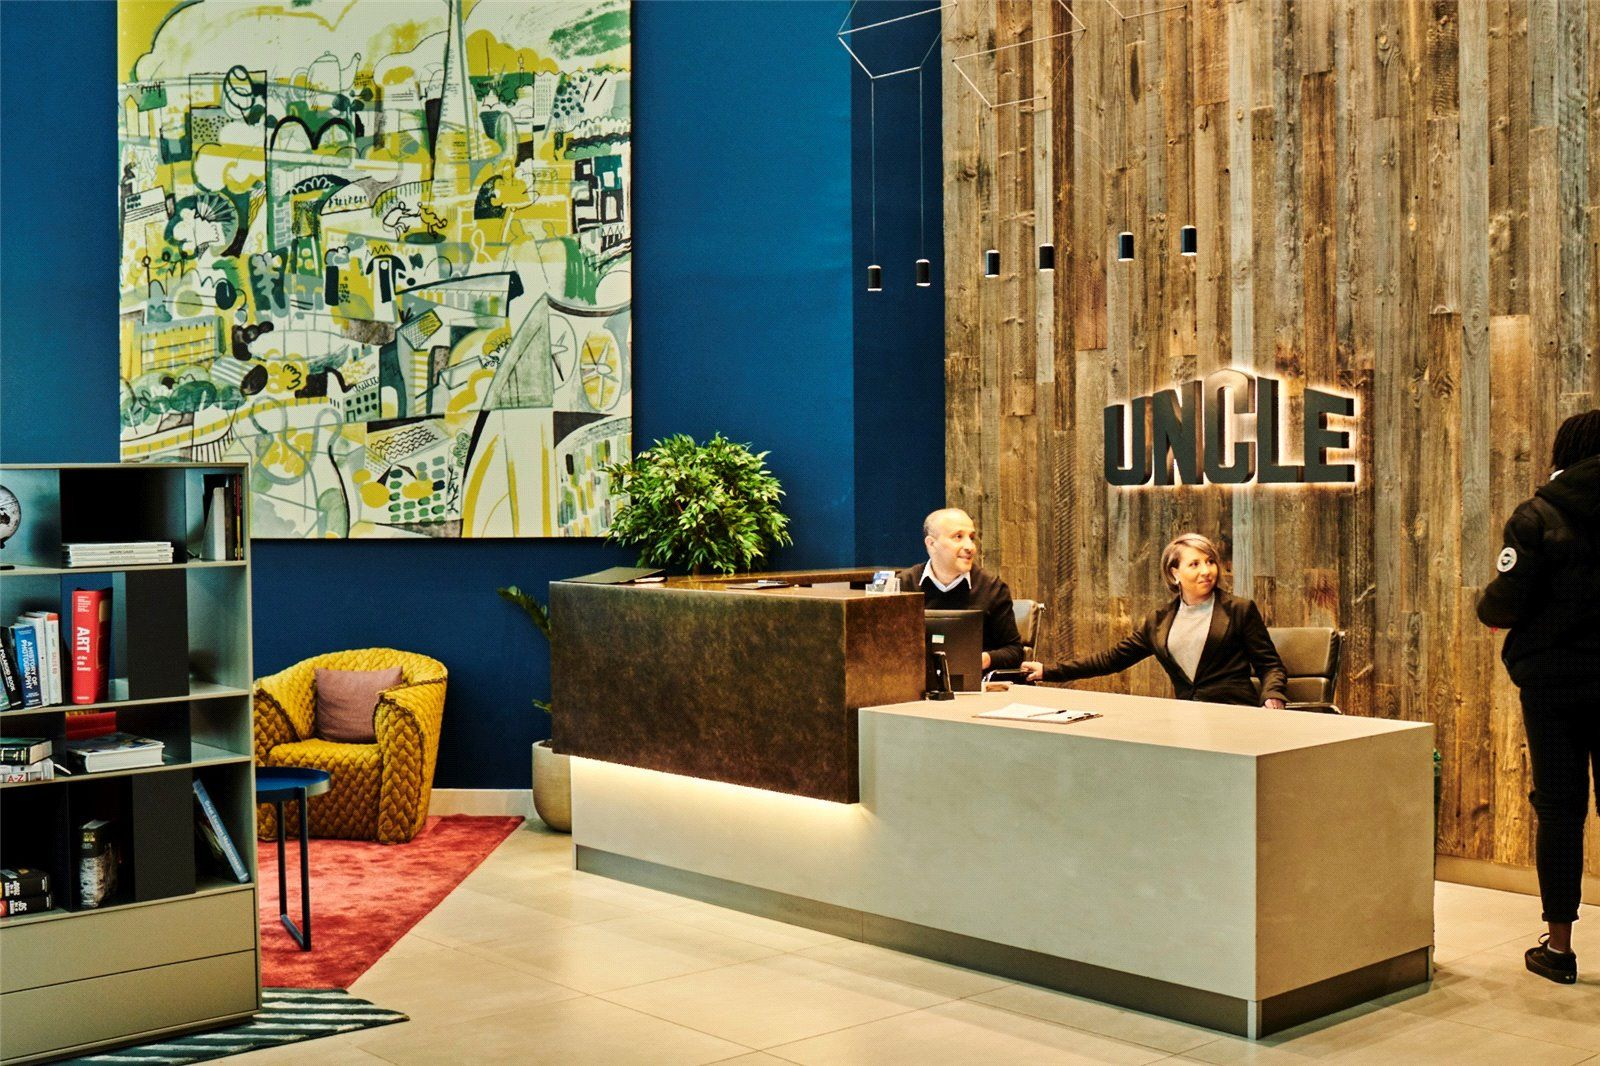 The common area at UNCLE Elephant & Castle, a Build To Rent development in South East London.